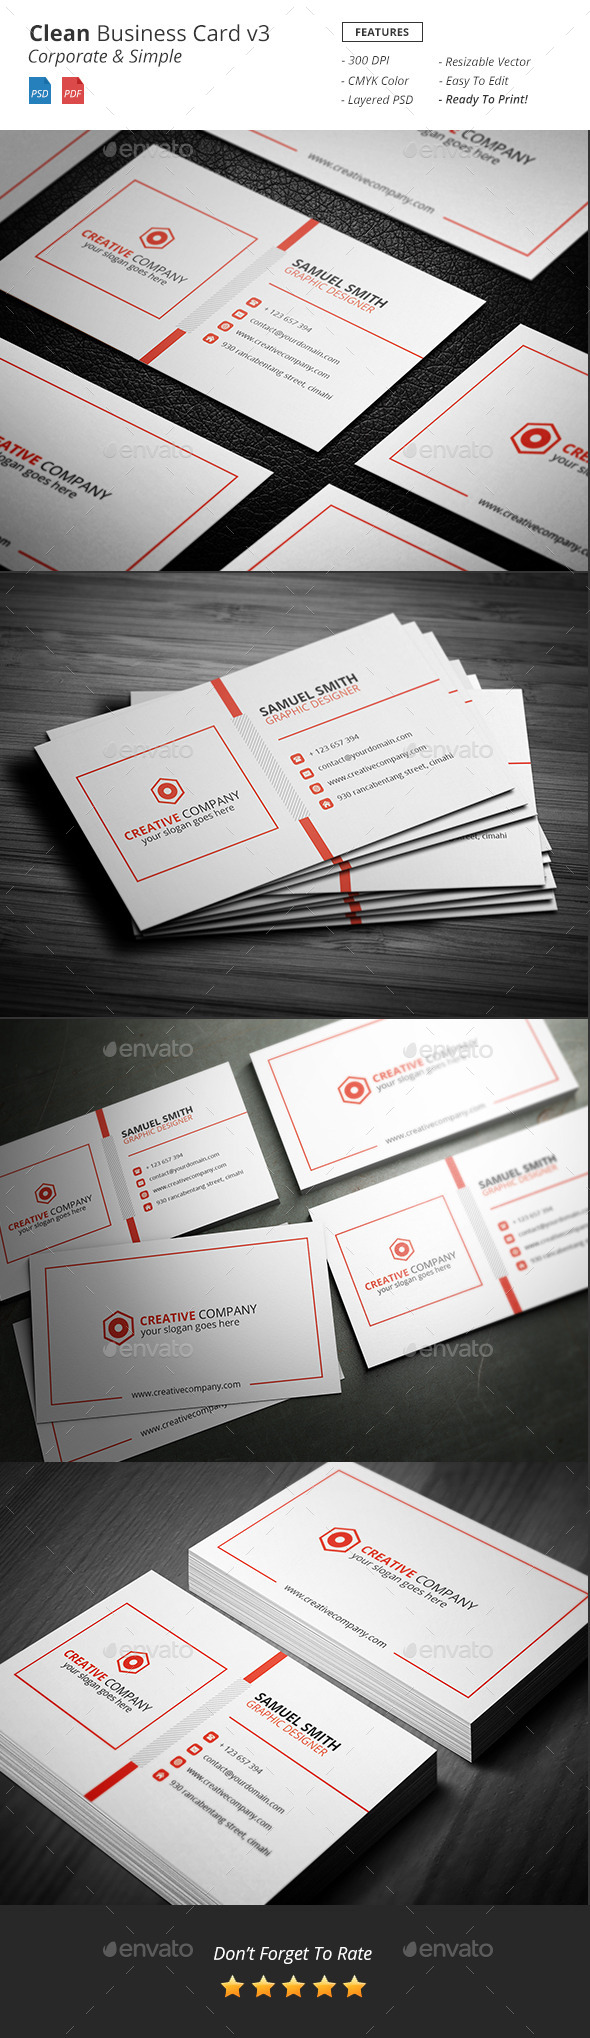 Clean - Corporate Bussiness Card v3 - Corporate Business Cards